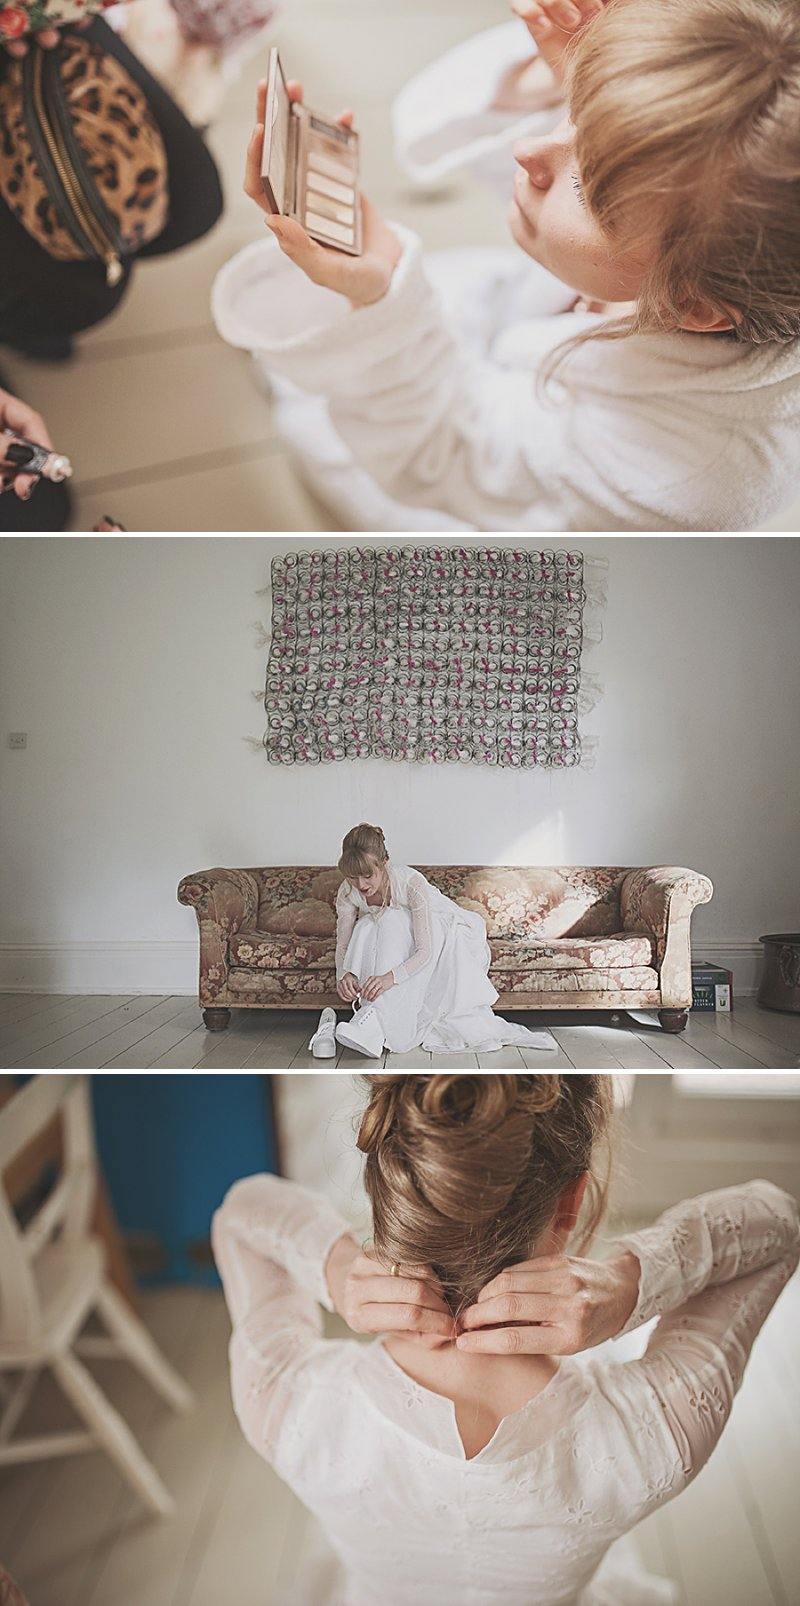 A DIY Wedding with homemade flowers, flamingo art, a polytunnel ceremony, apples, pumpkins, vintage dress and suit and vegetable bouquets.  Apple sharing ceremony at home with photography by Camilla Rosa_0003